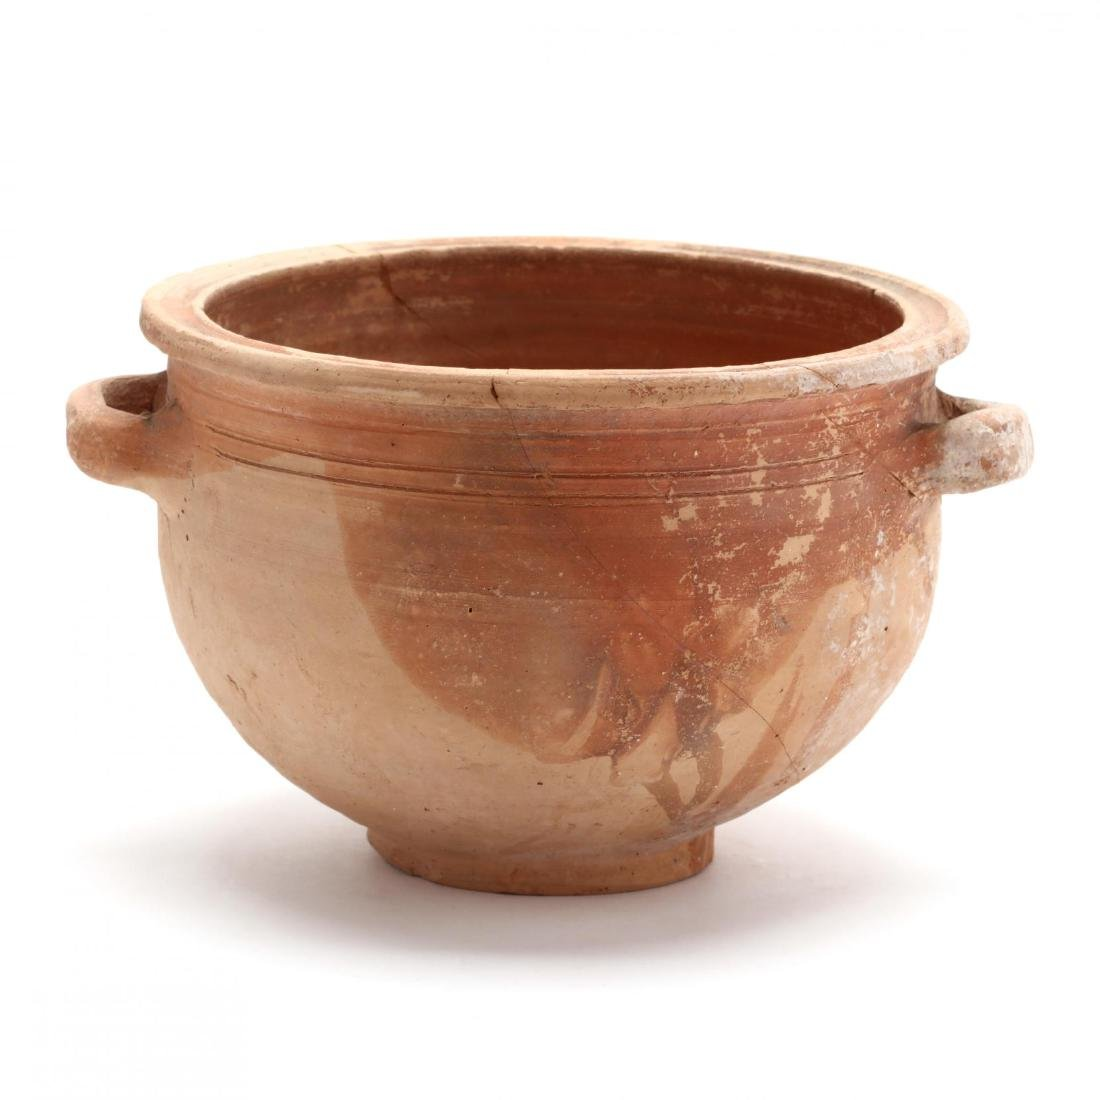 Hellenistic Cypriot Bowl